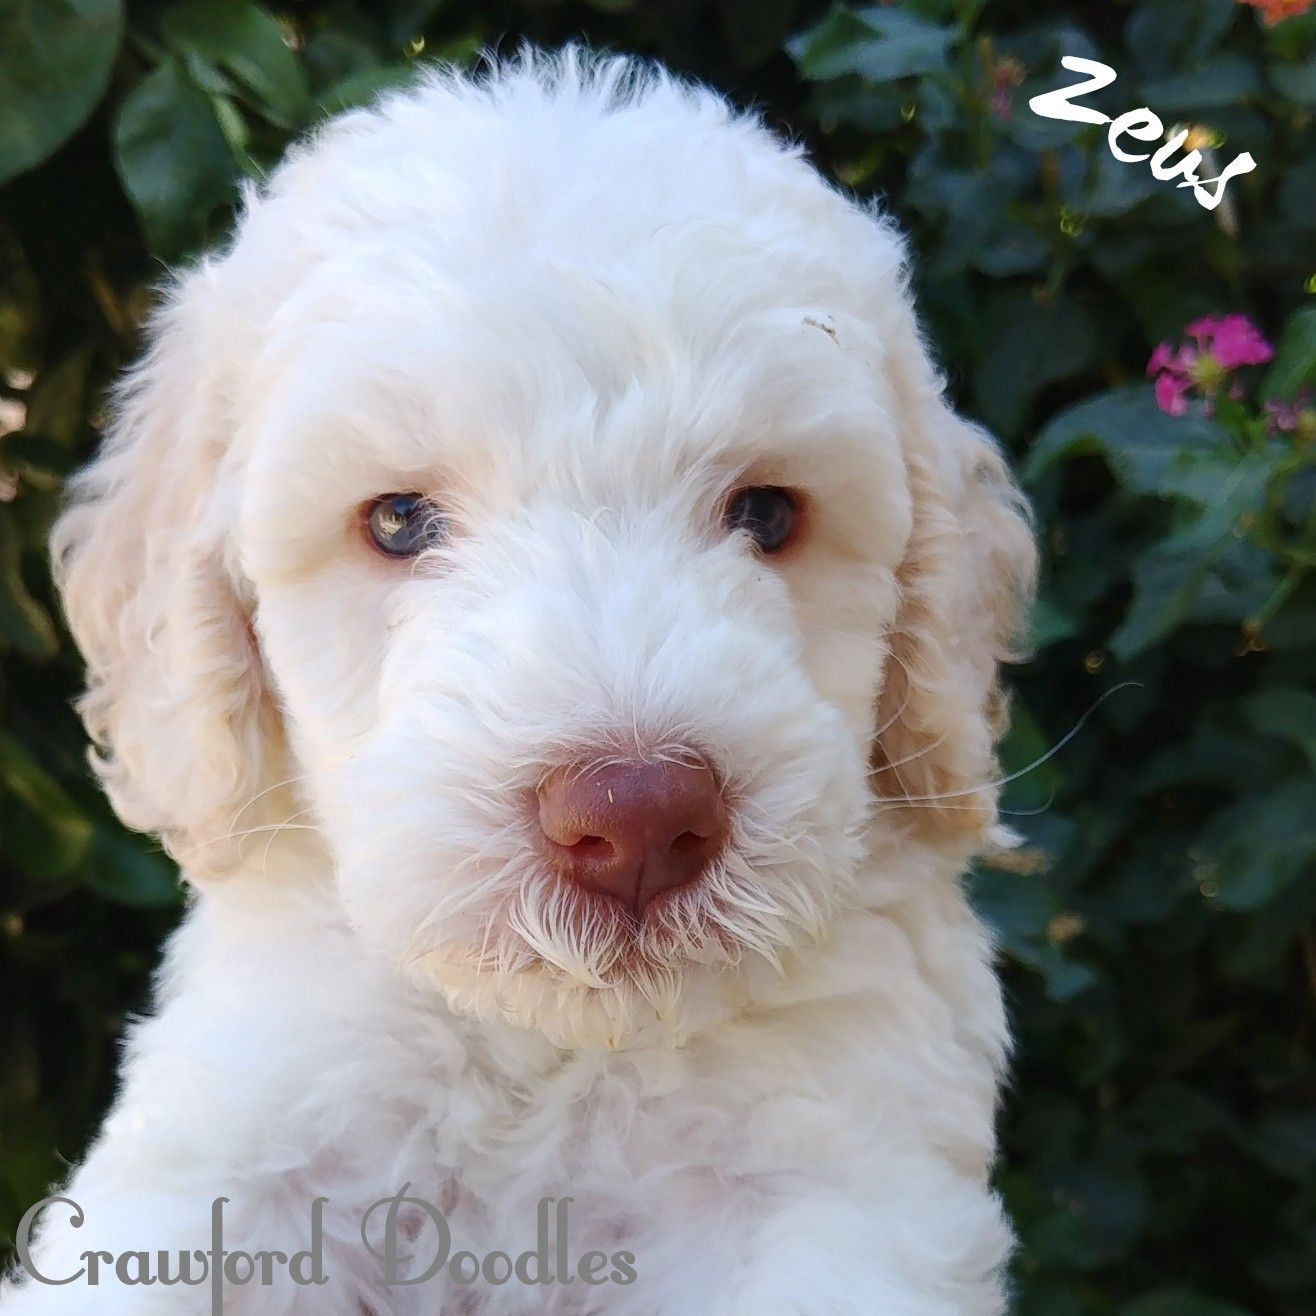 Puppies For Sale In Arizona Multi Generational Australian Labradoodles Crawforddoodles Labradoodle Puppy Australian Labradoodle Puppies Labradoodle